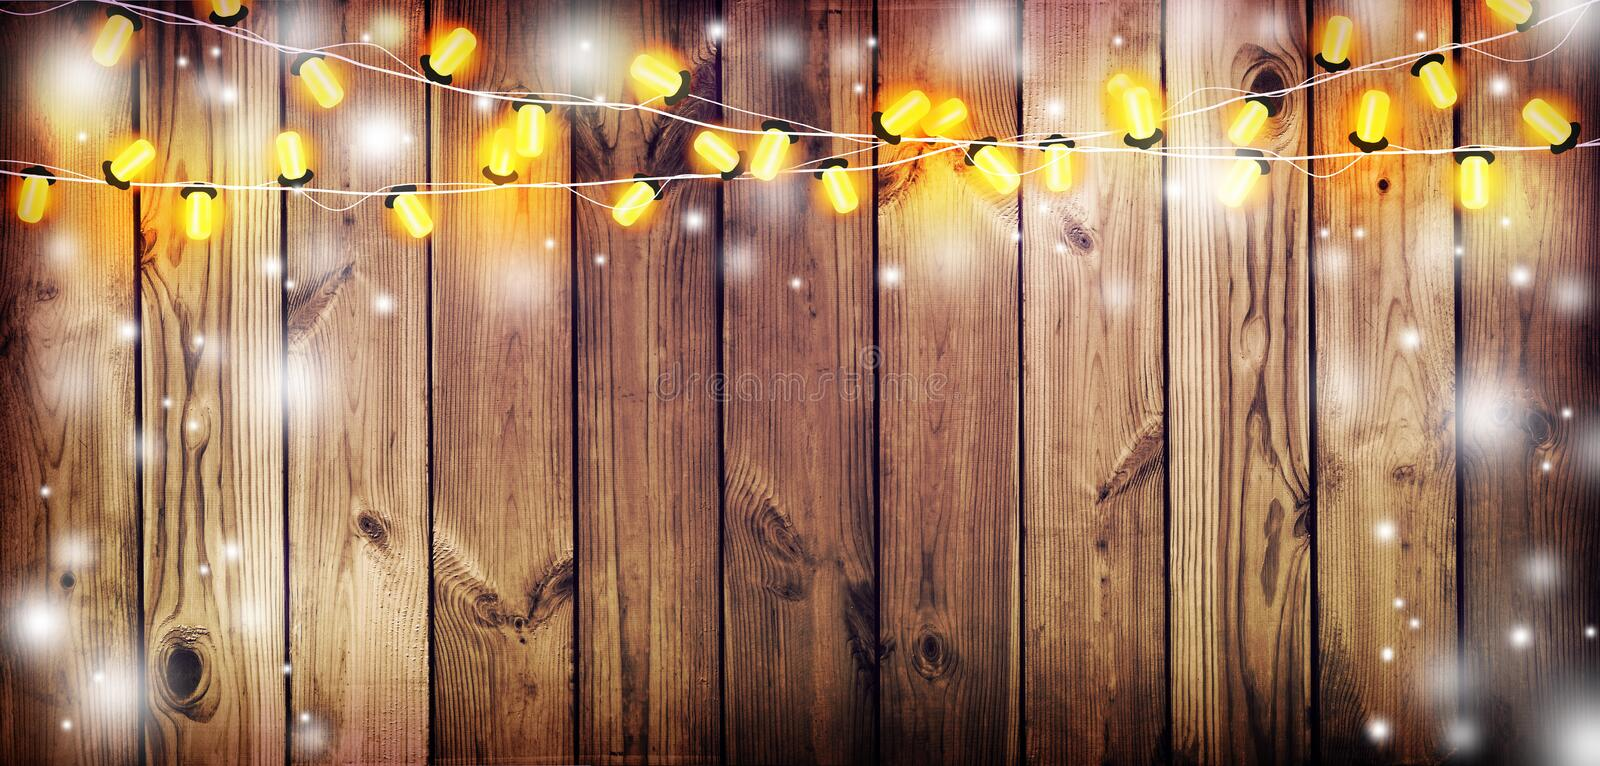 Download Garland With Lights. Old Wooden Background. Celebratory Lights. Night Party. Stock Image - Image of darkness, people: 104843155